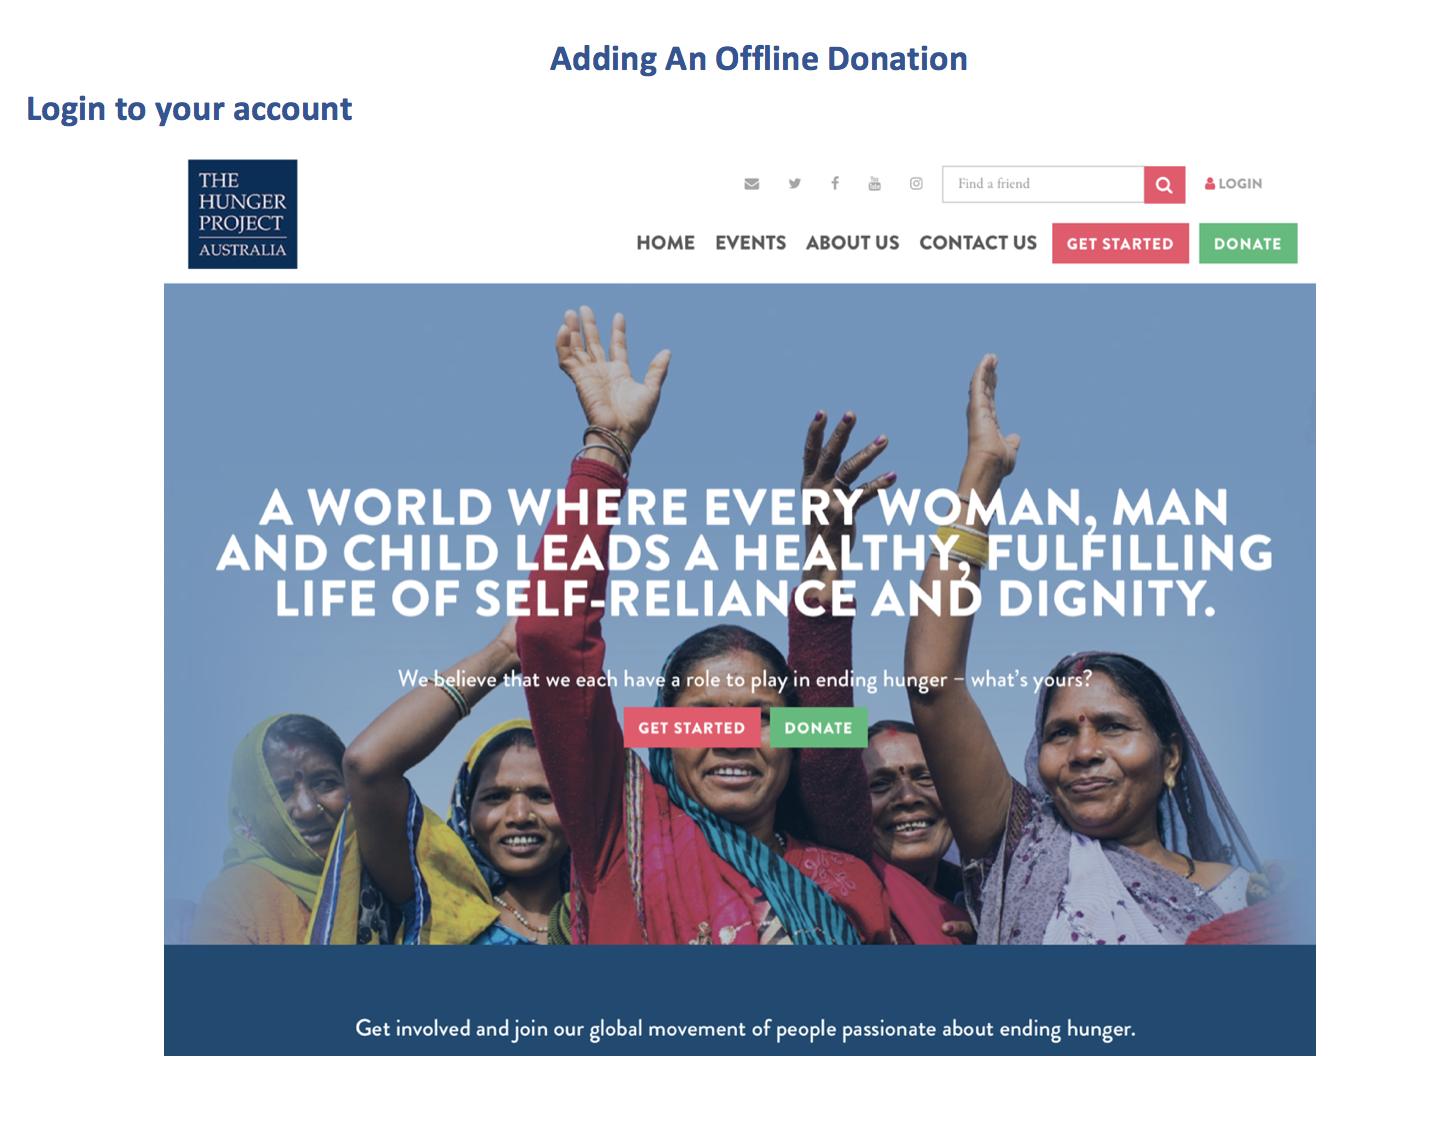 How to add an offline donation